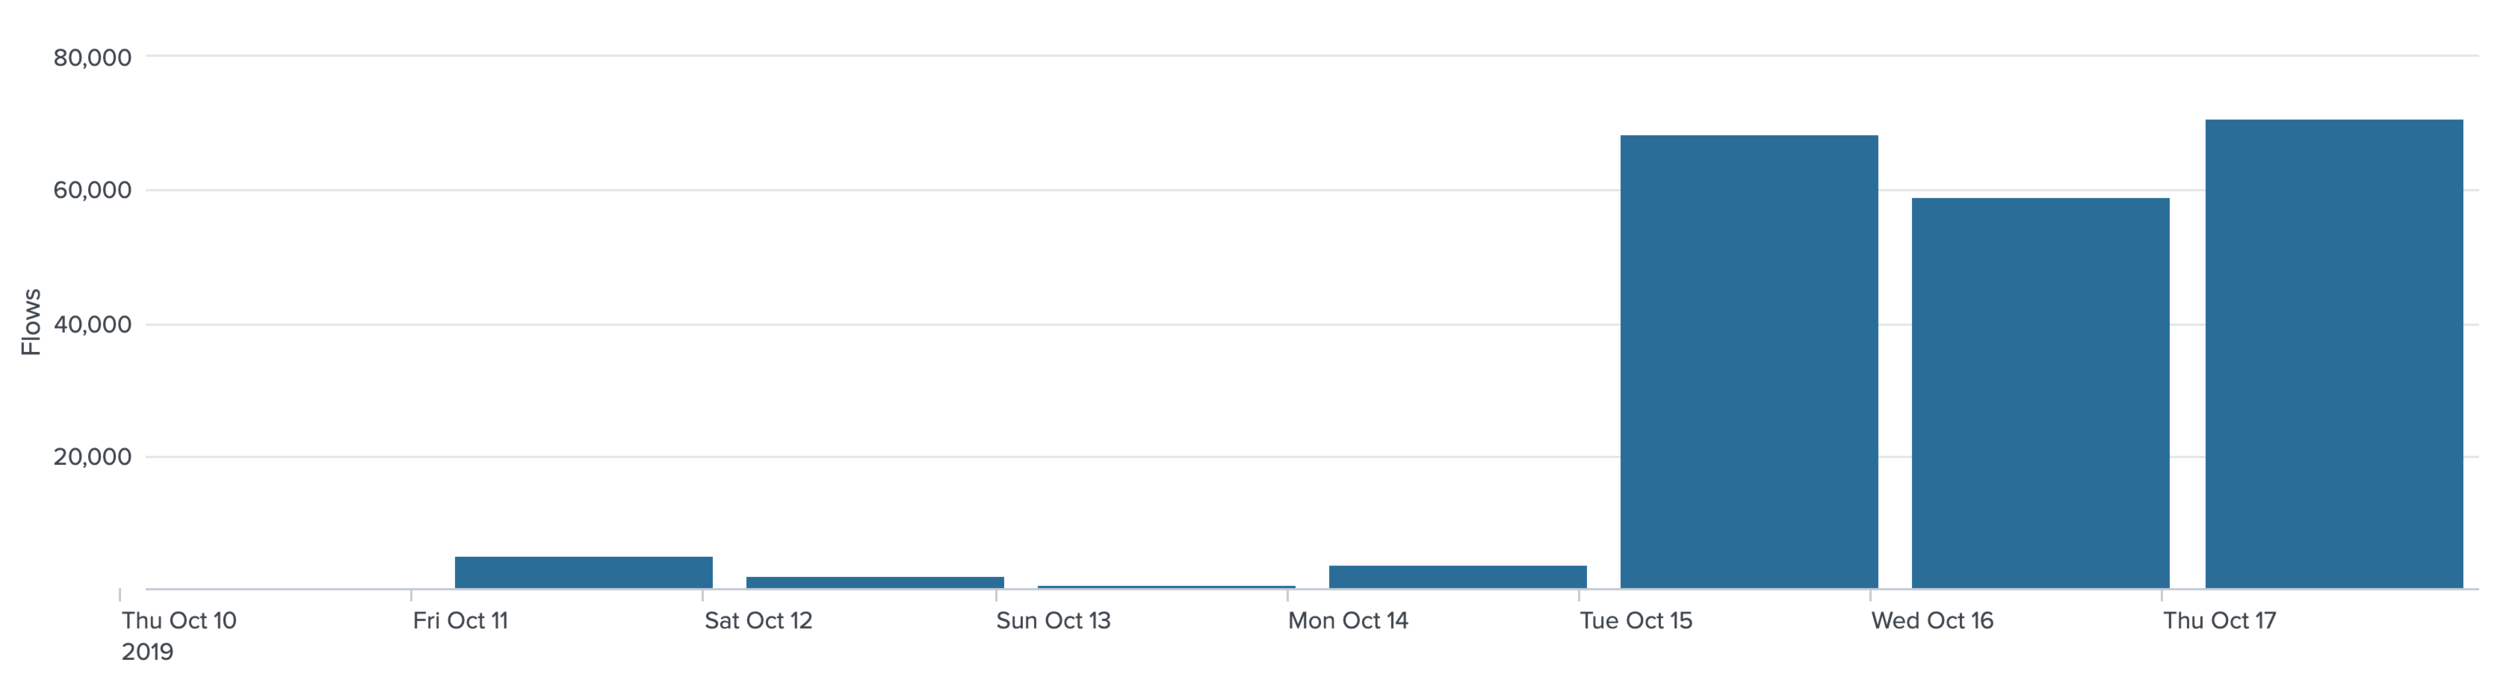 Figure 4: The number of connections spiked to more than 50000 on October 15th. Source:  Aposemat Project .